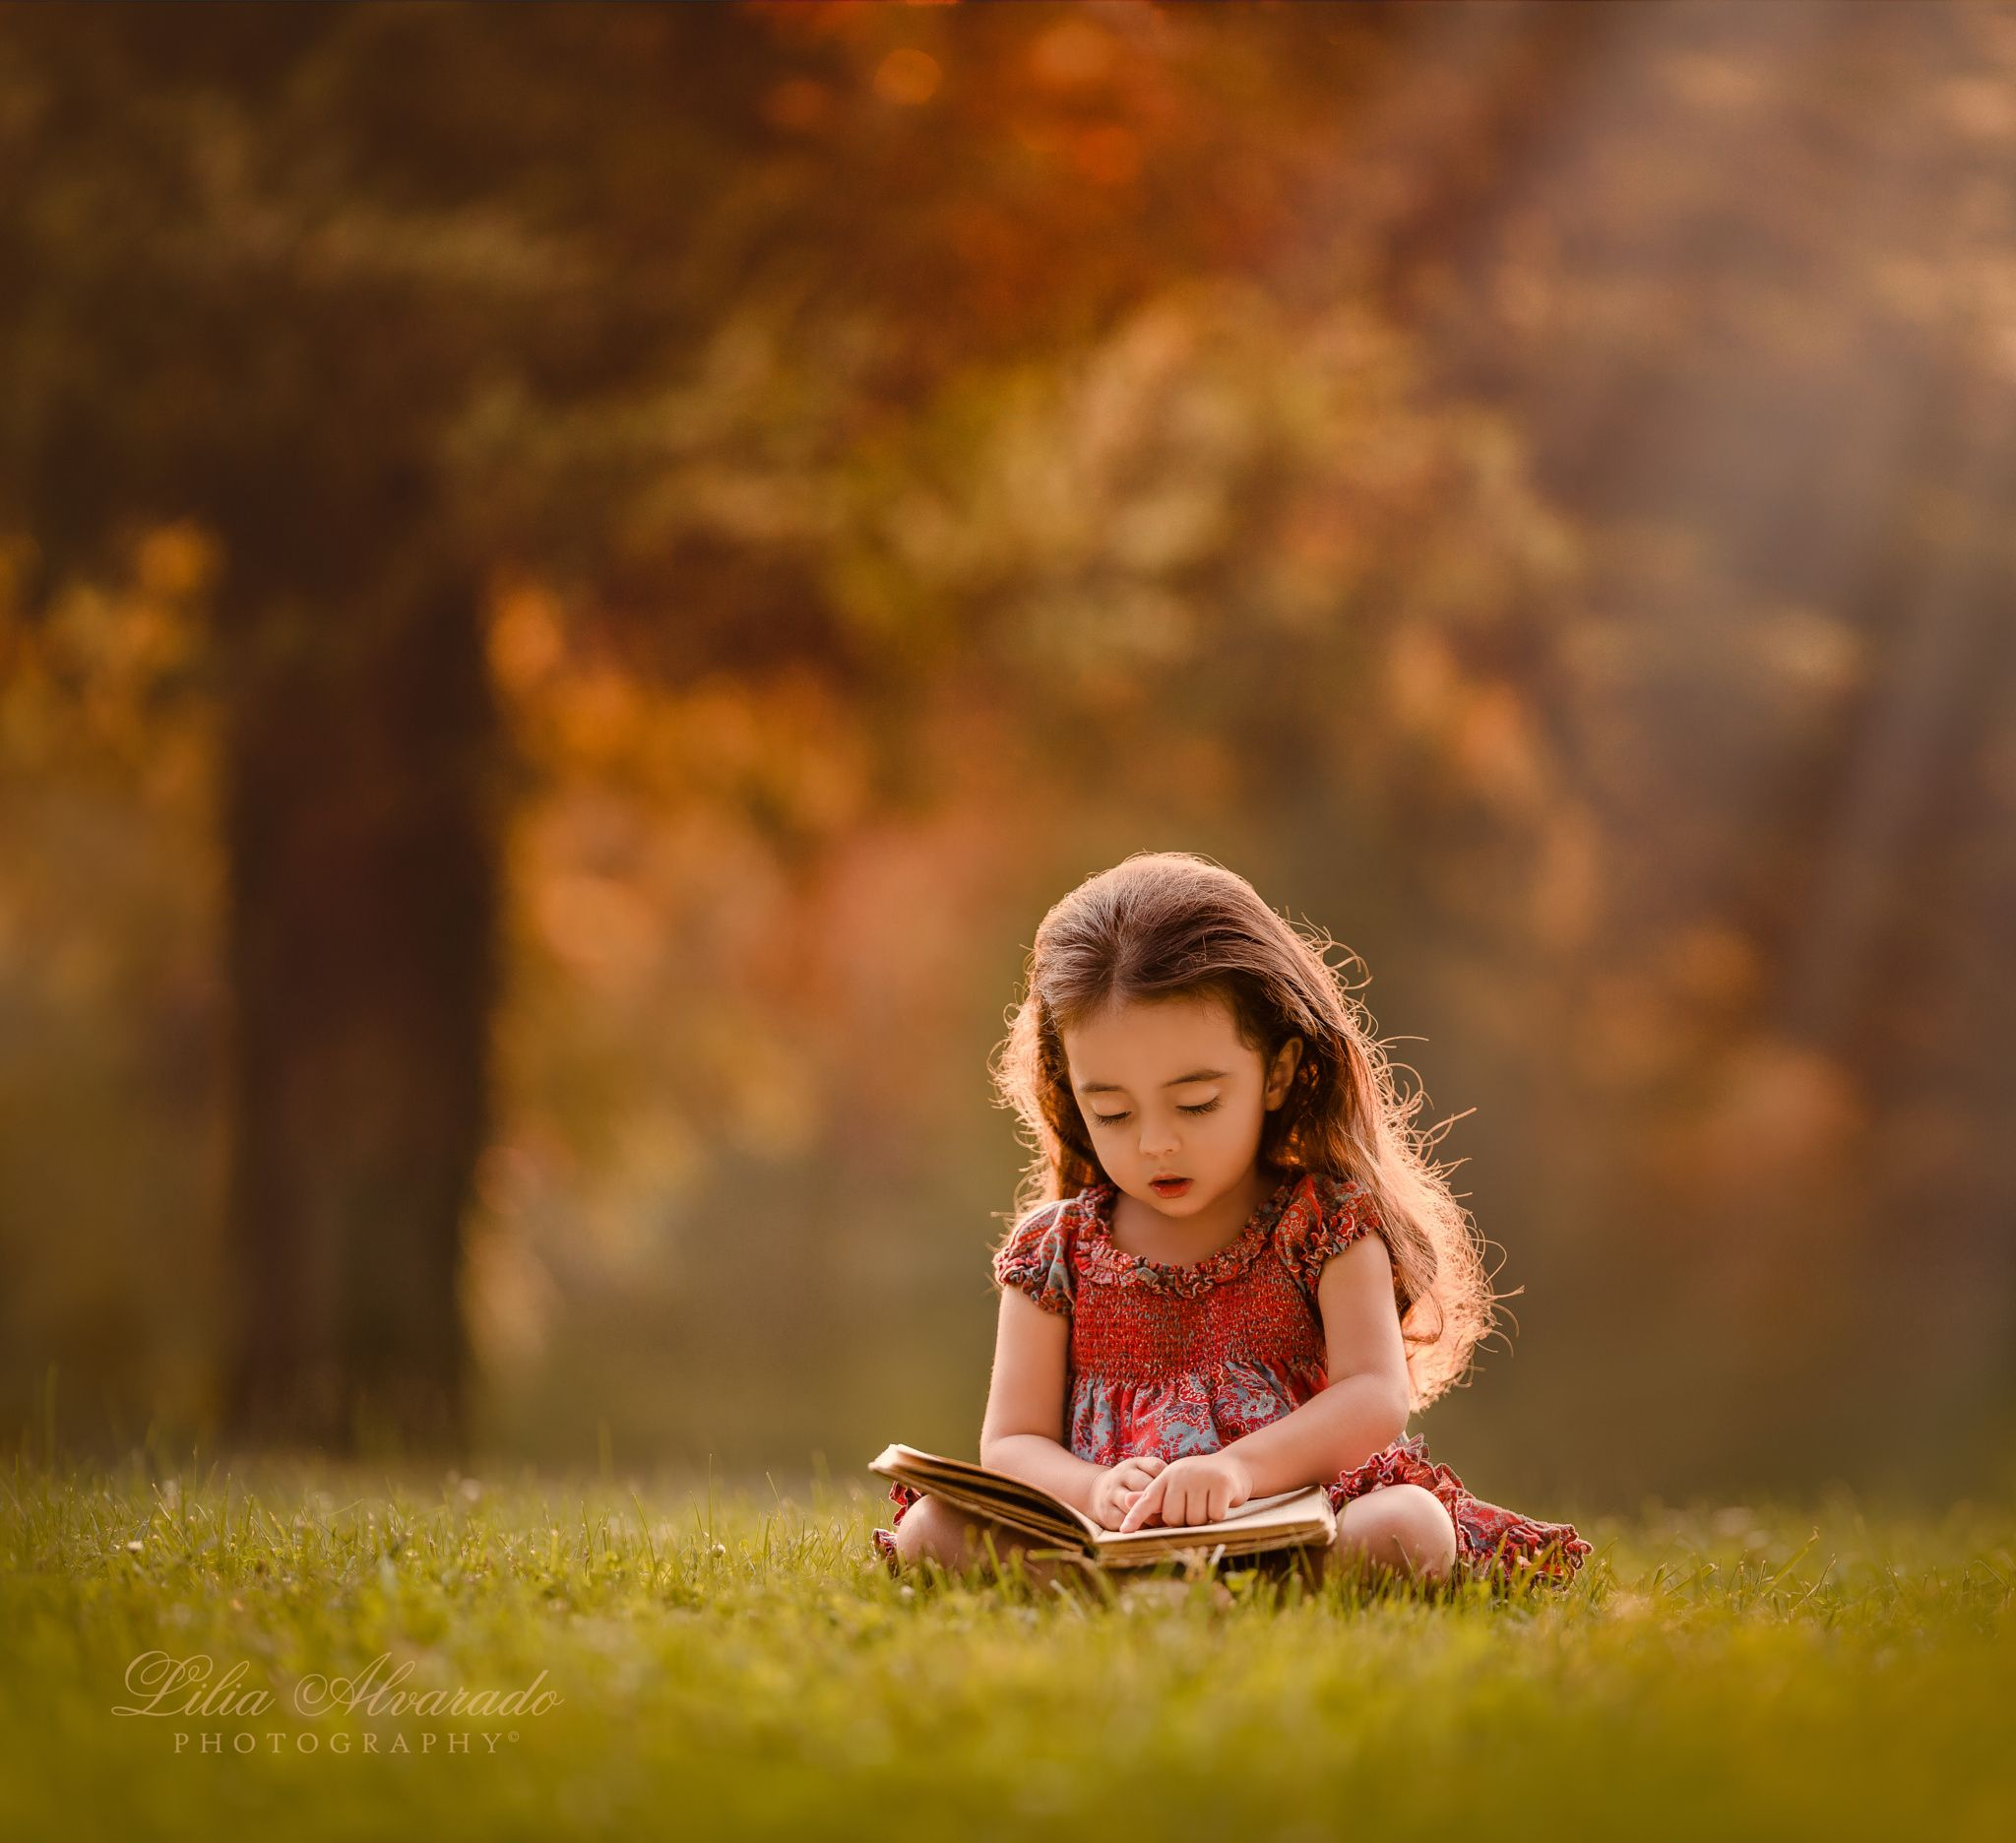 Light Of Knowledge by Lilia Alvarado on 500px